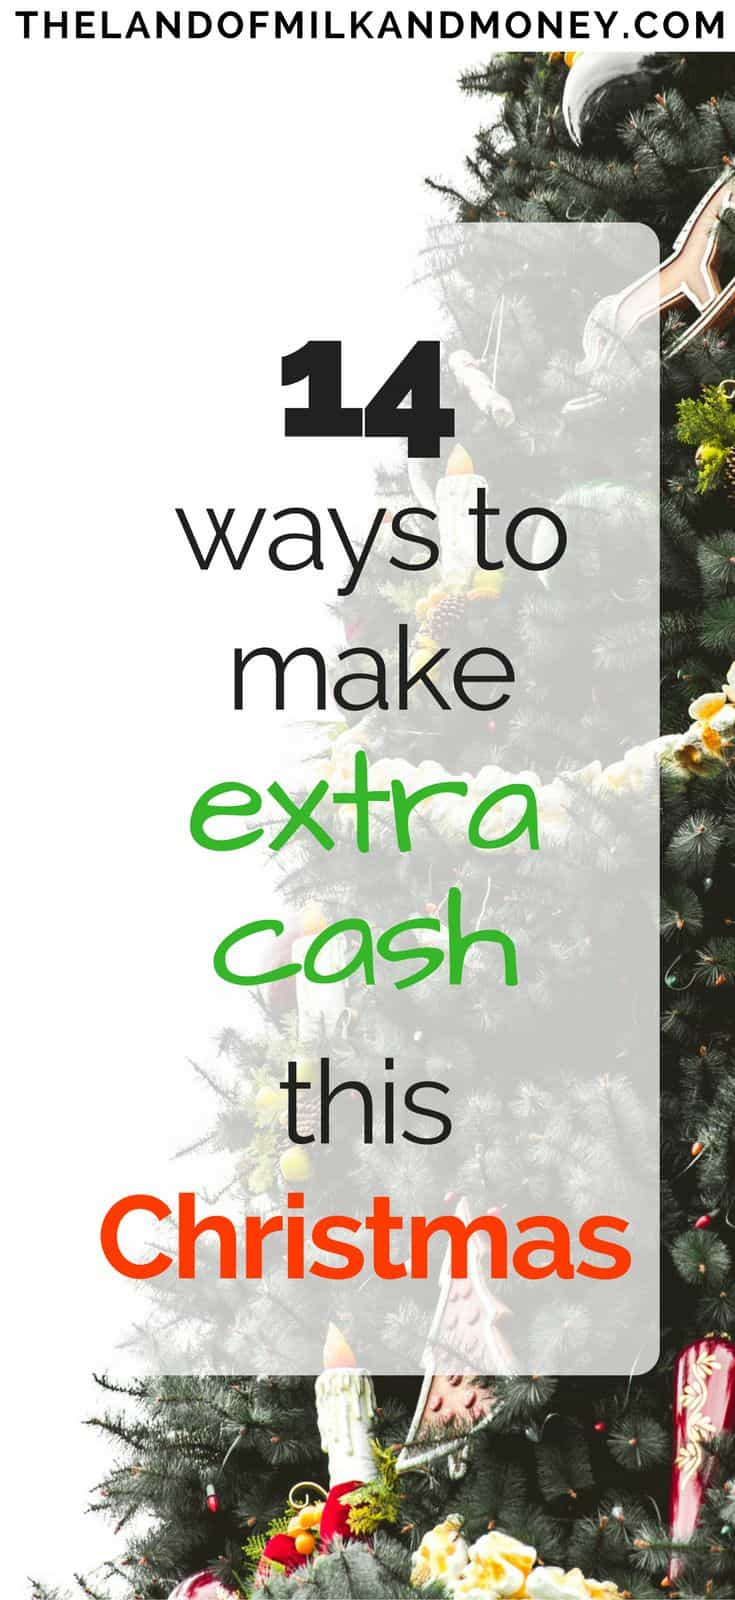 I never would have thought of ways to make money over the holidays but seeing how to earn extra money is so good when I'm trying to have a frugal Christmas on a budget! Seeing how to make money from home as a Christmas side hustle is fantastic - and will go a long way to helping me pay for the Christmas traditions in our family! #christmas #holidays #makemoney #sidehustle